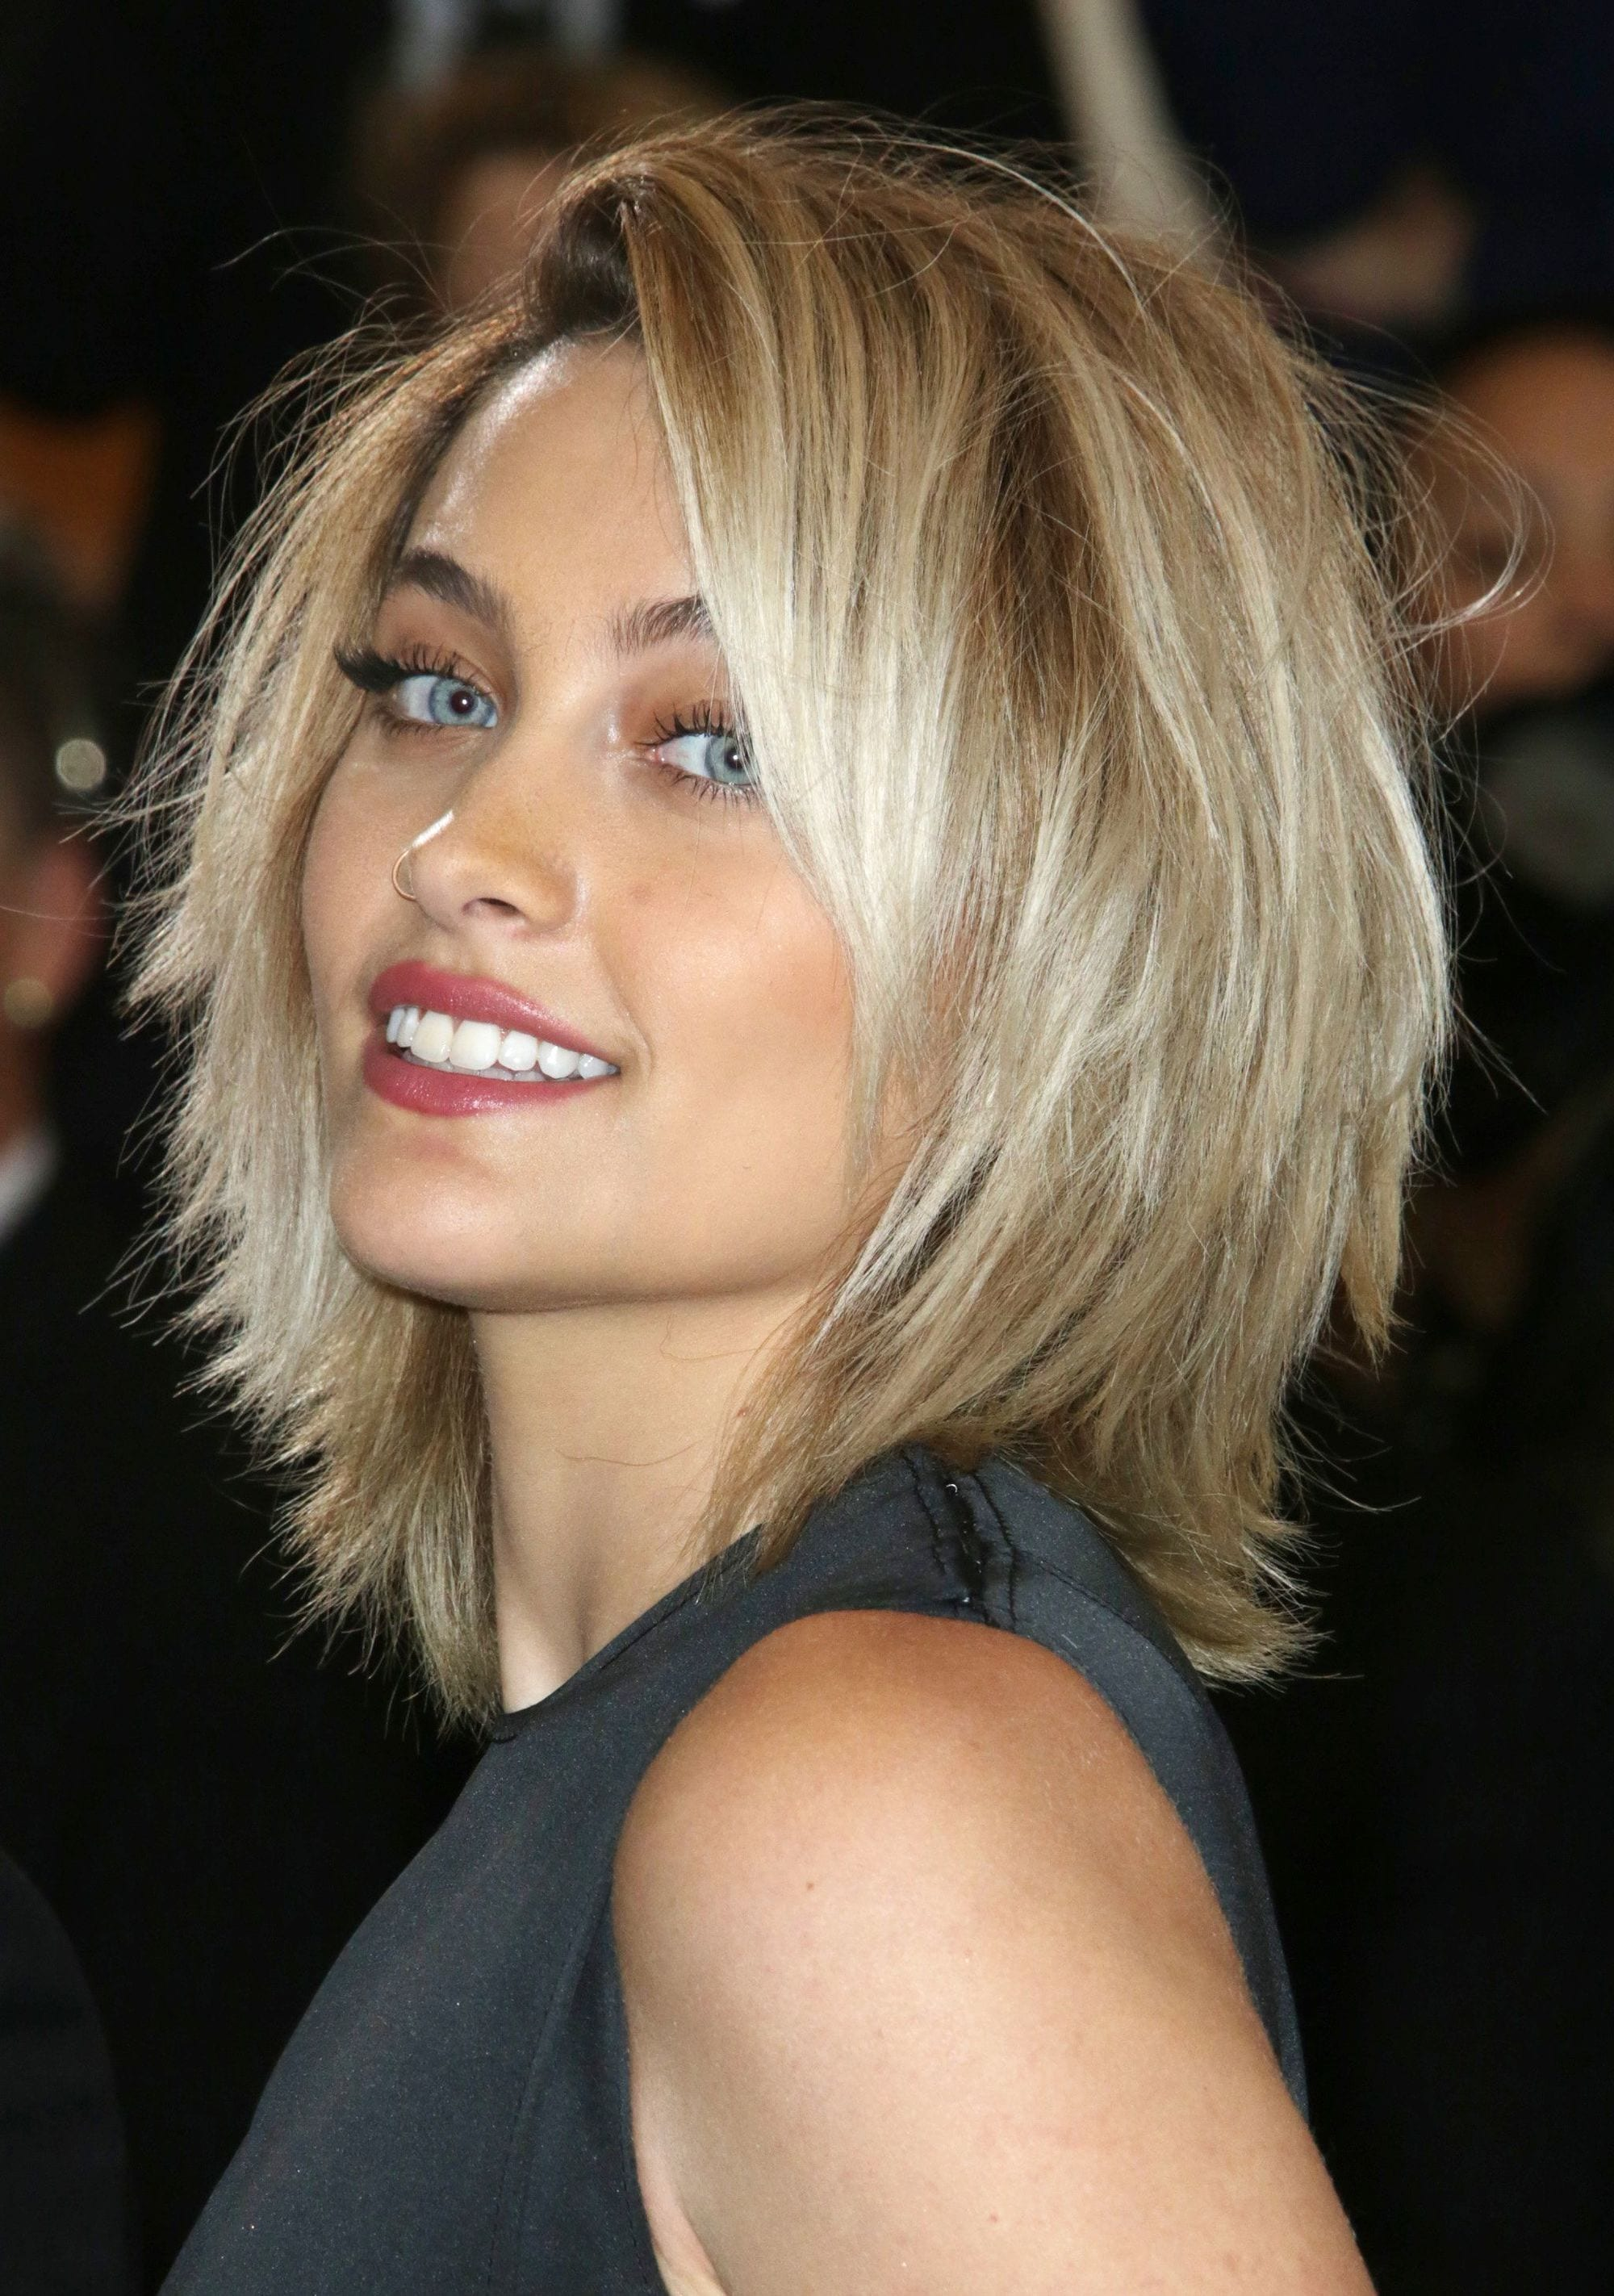 How To Get People To Like Haircut For Thin Hair To Look Thicker